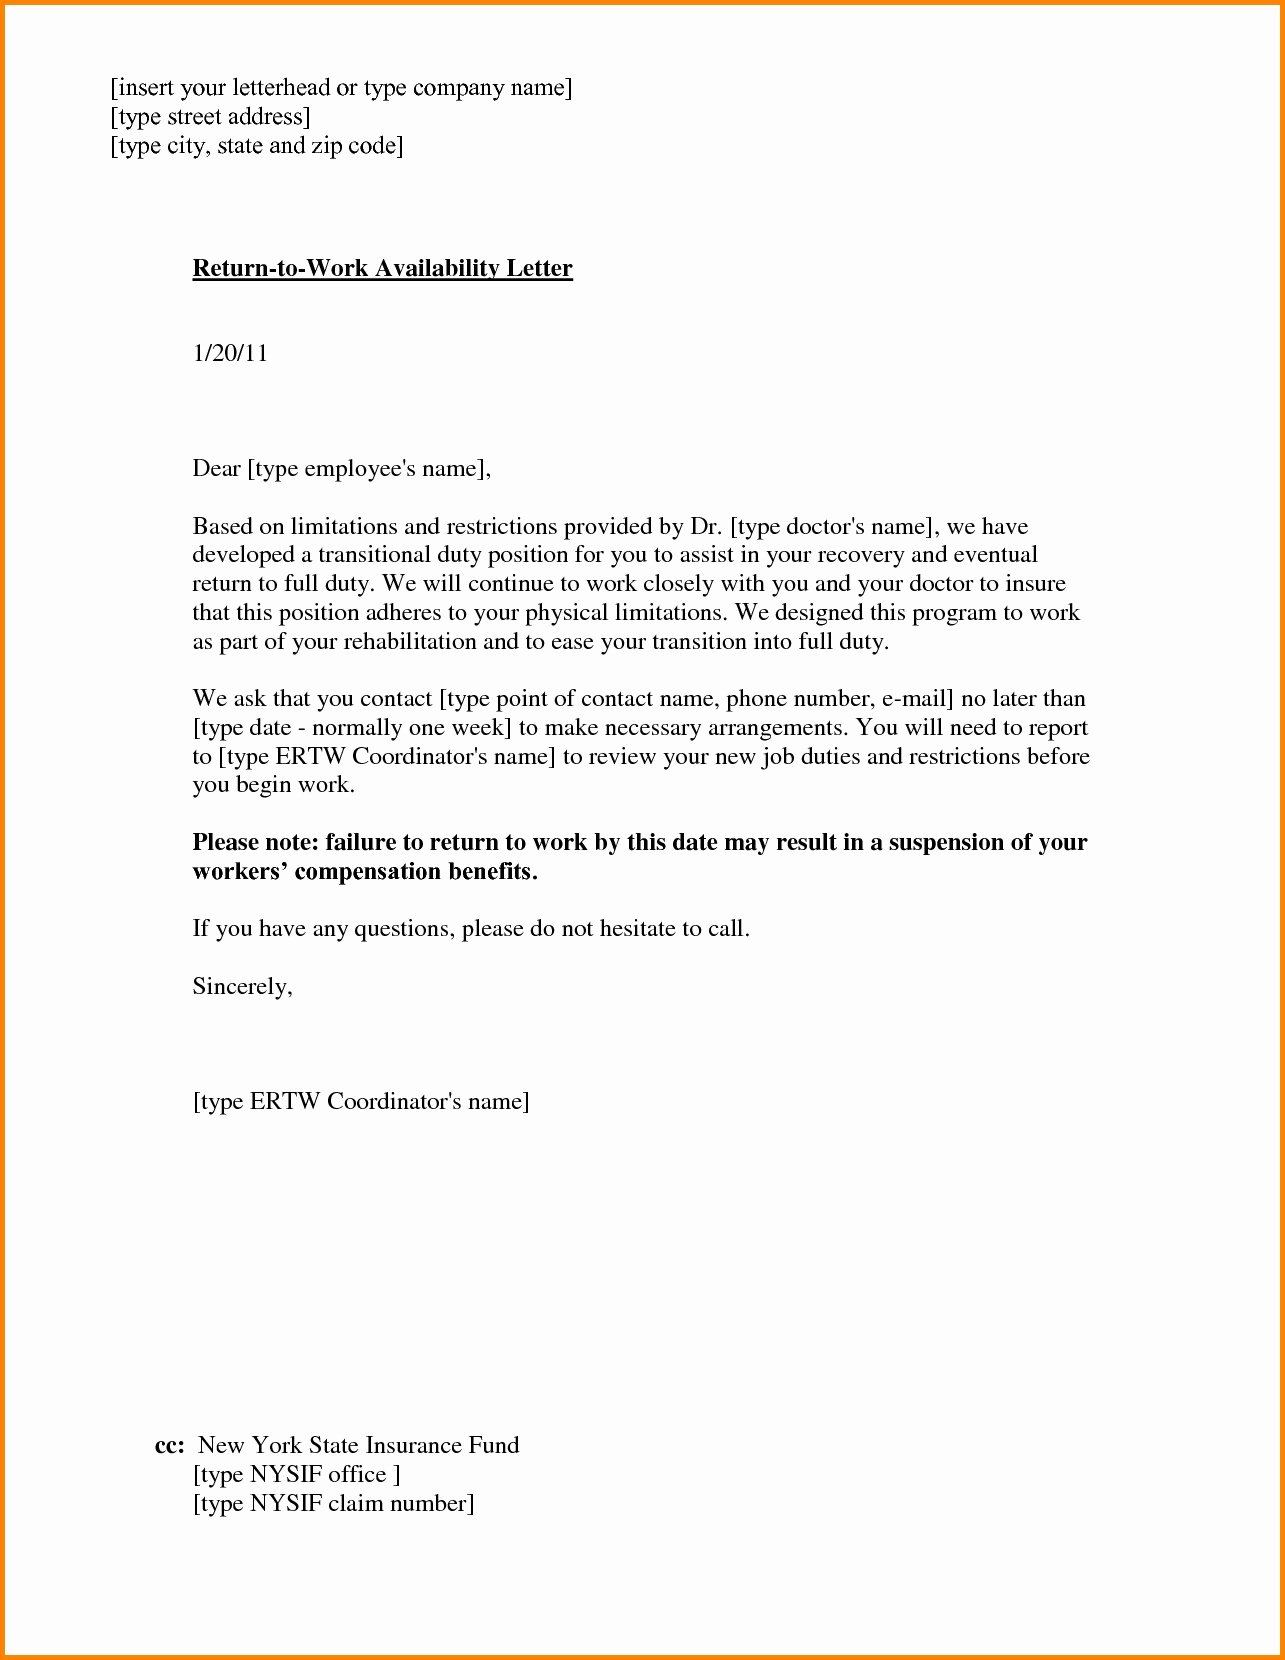 Work Restriction Letter Beautiful Return to Work with Restrictions Letter